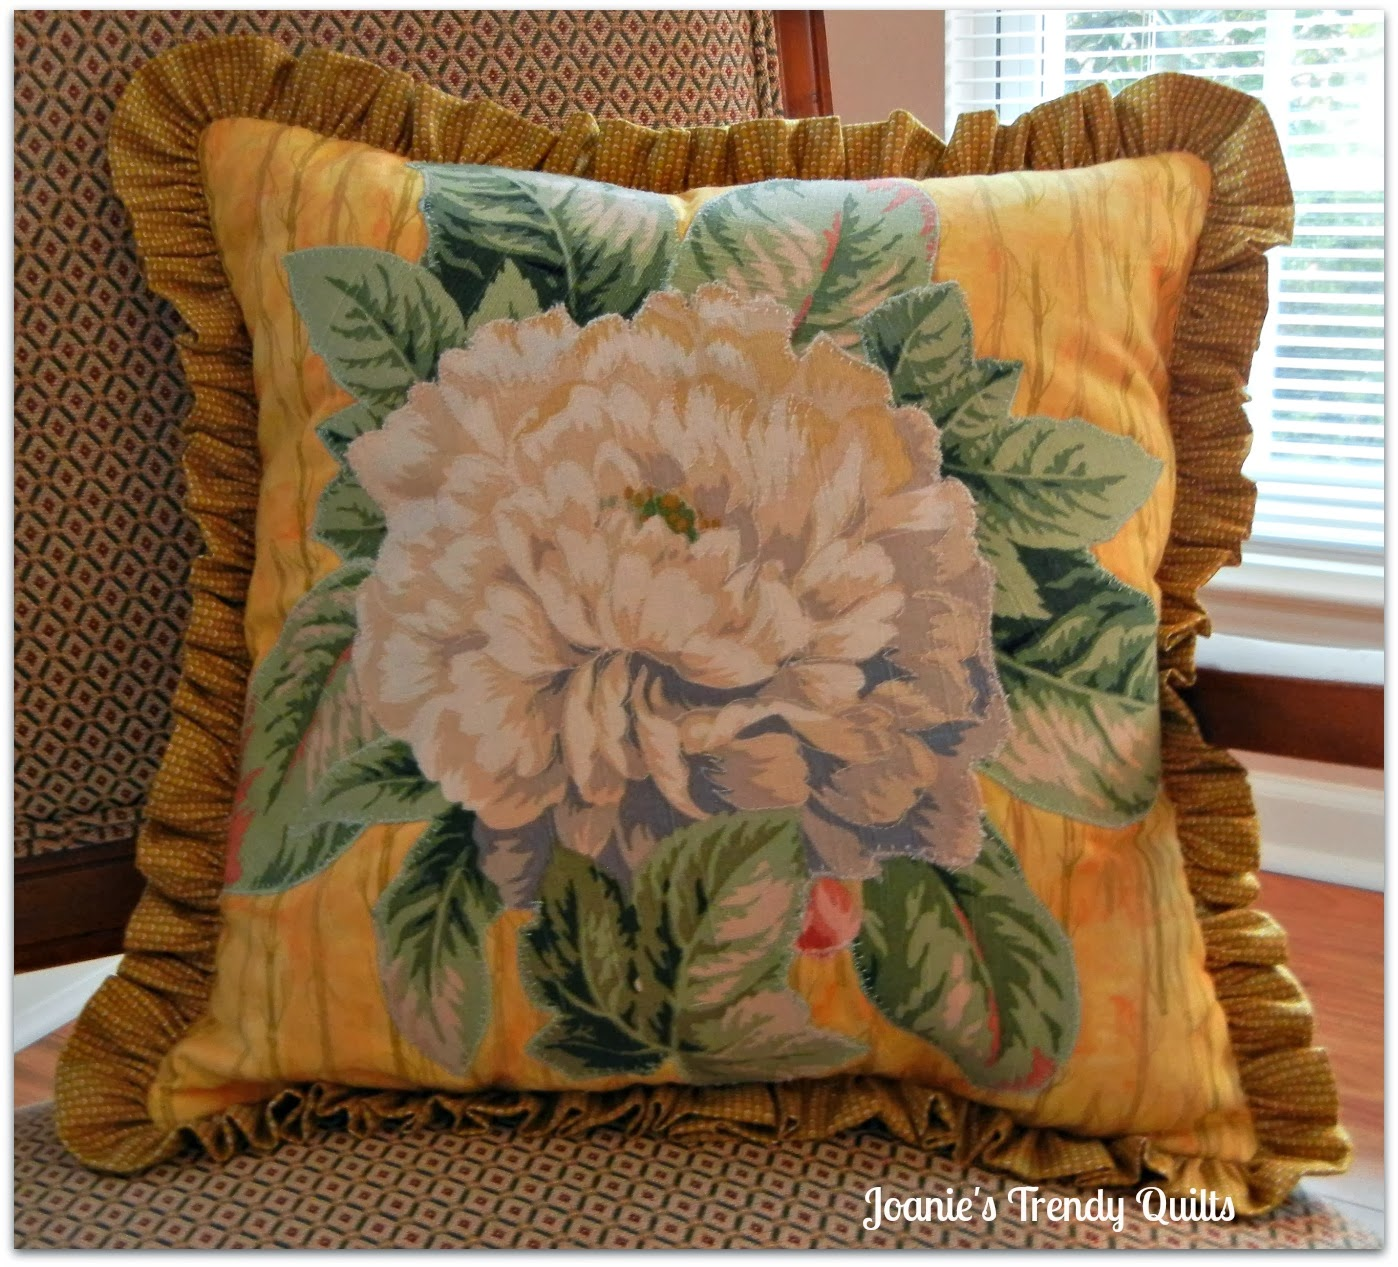 Living Room Quilts joanie's trendy quilts : decorative pillows for my living room